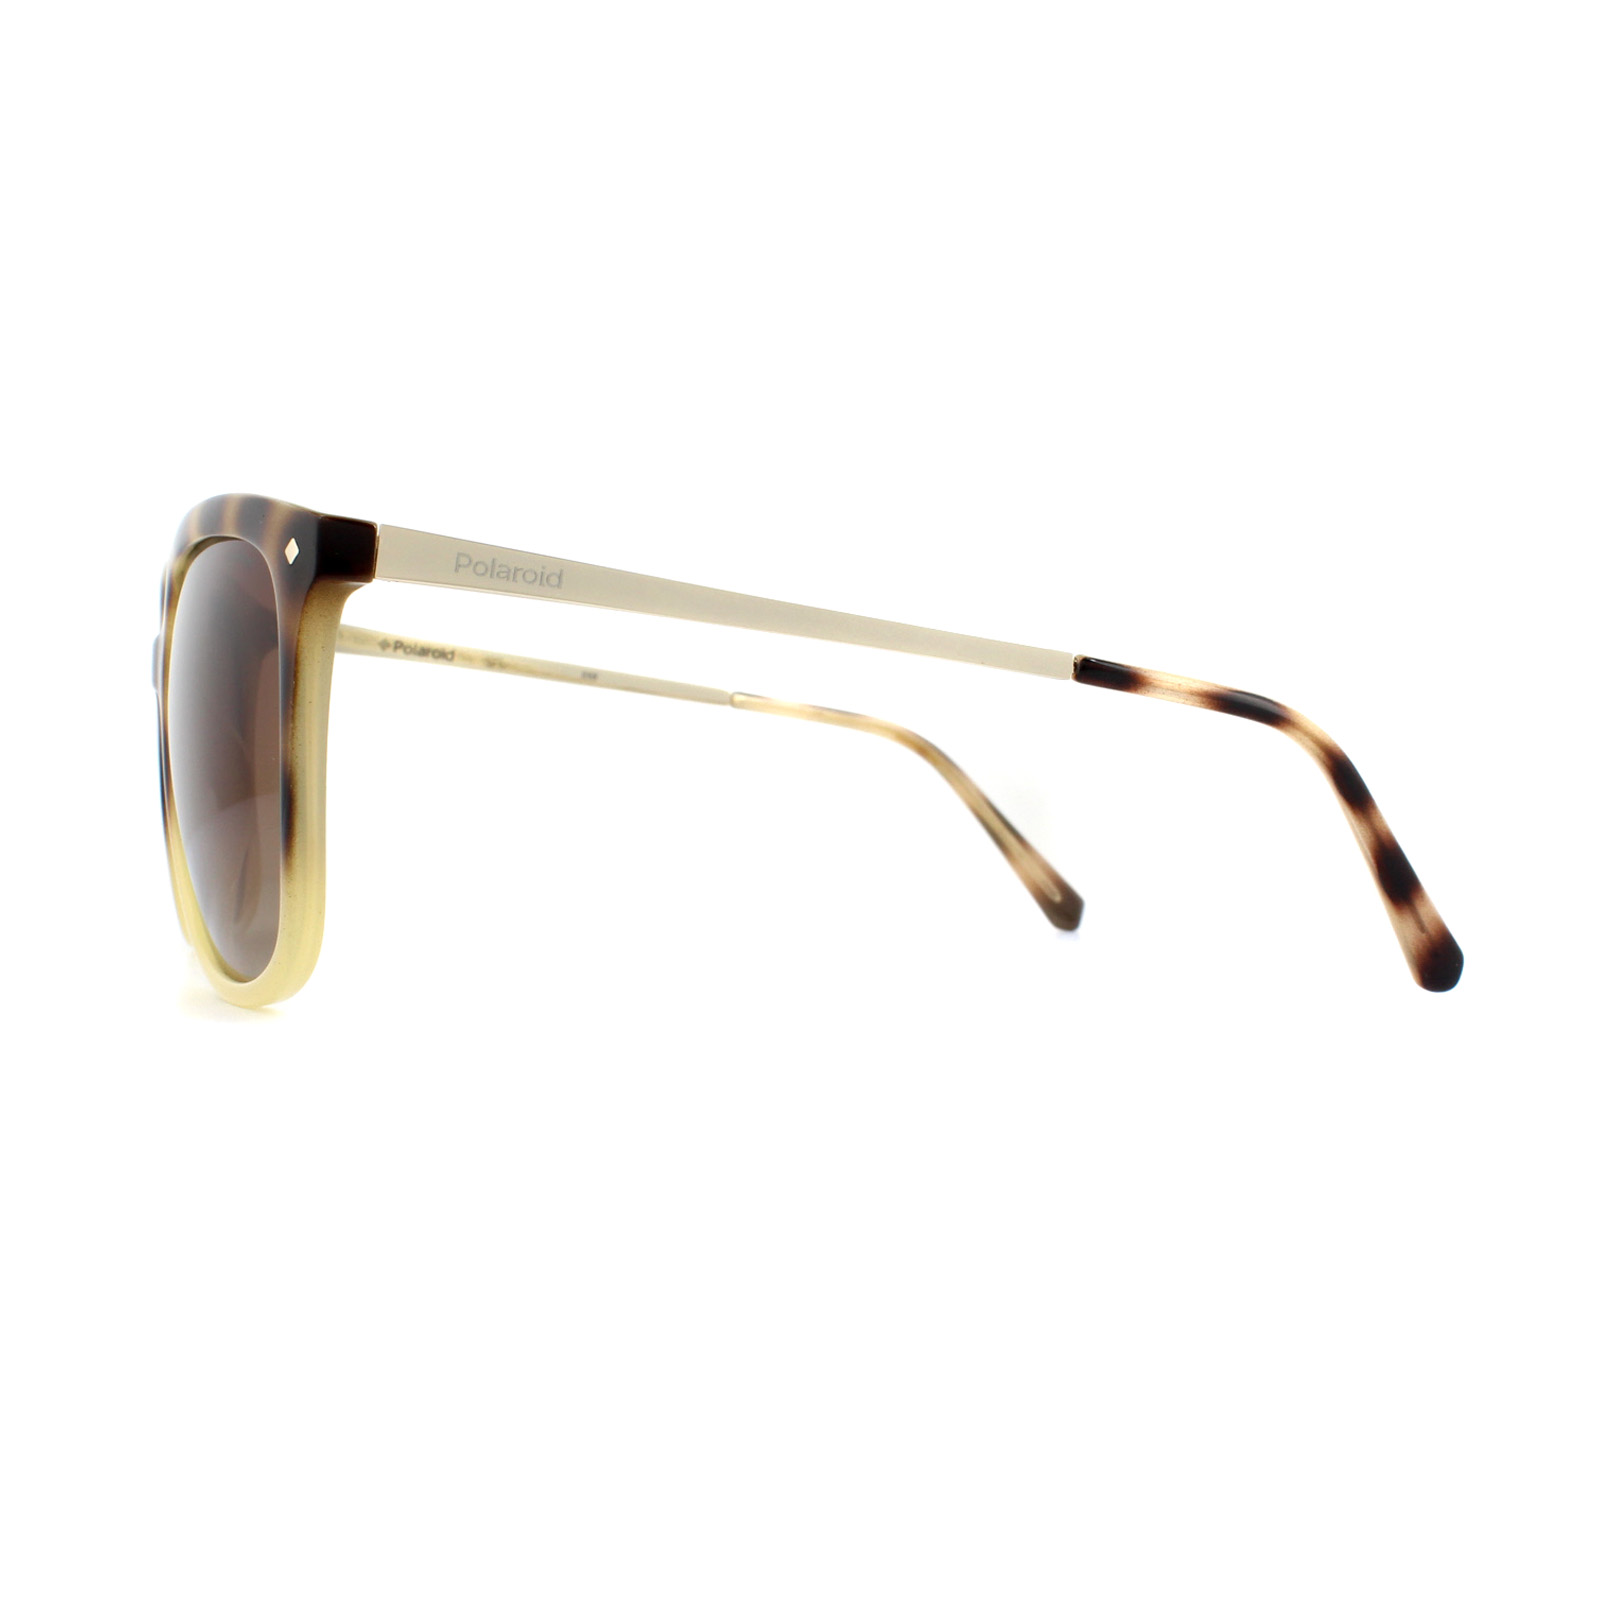 41417cbe38 Sentinel Polaroid Sunglasses PLD 4043 S Y67 X3 Havana Gold Brown Polarized